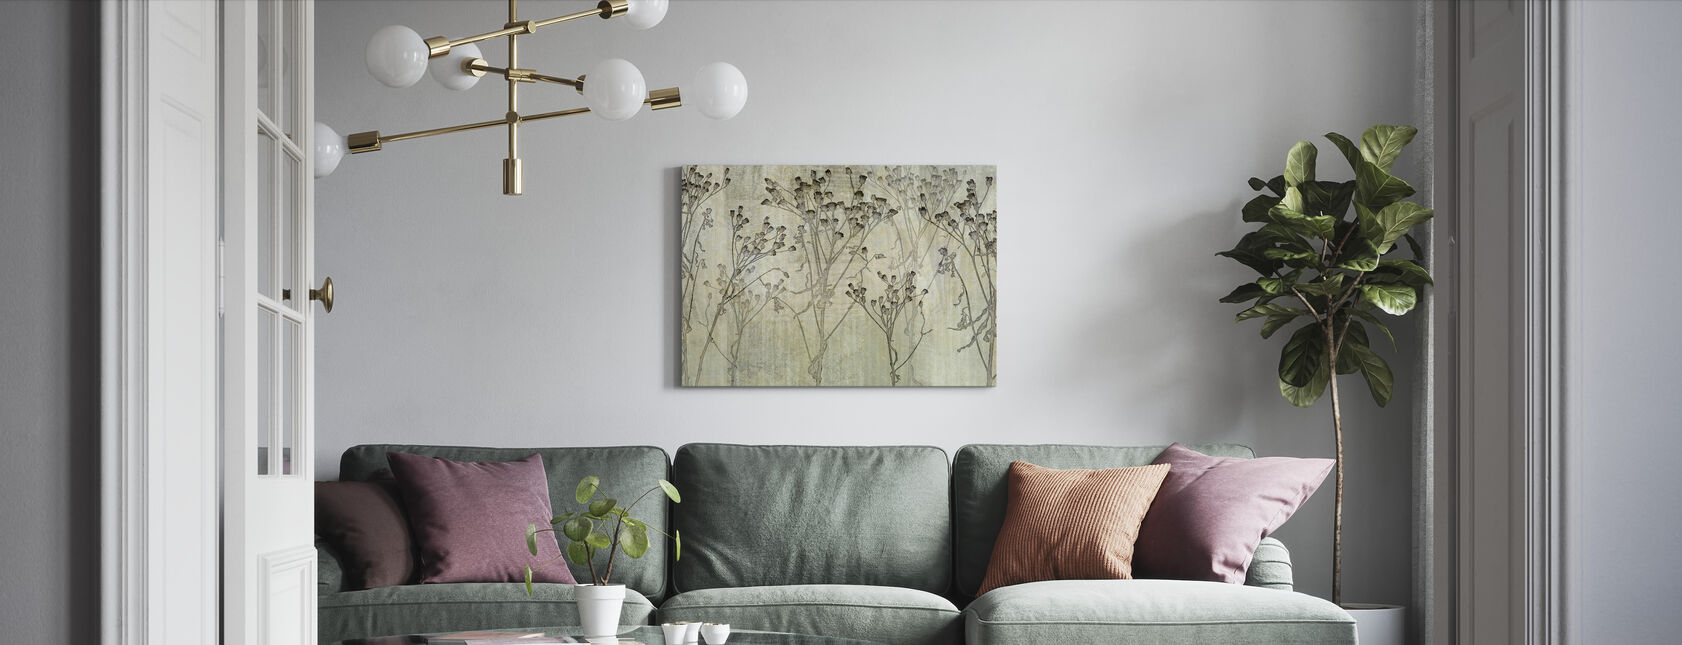 Concrete Weed - Canvas print - Living Room